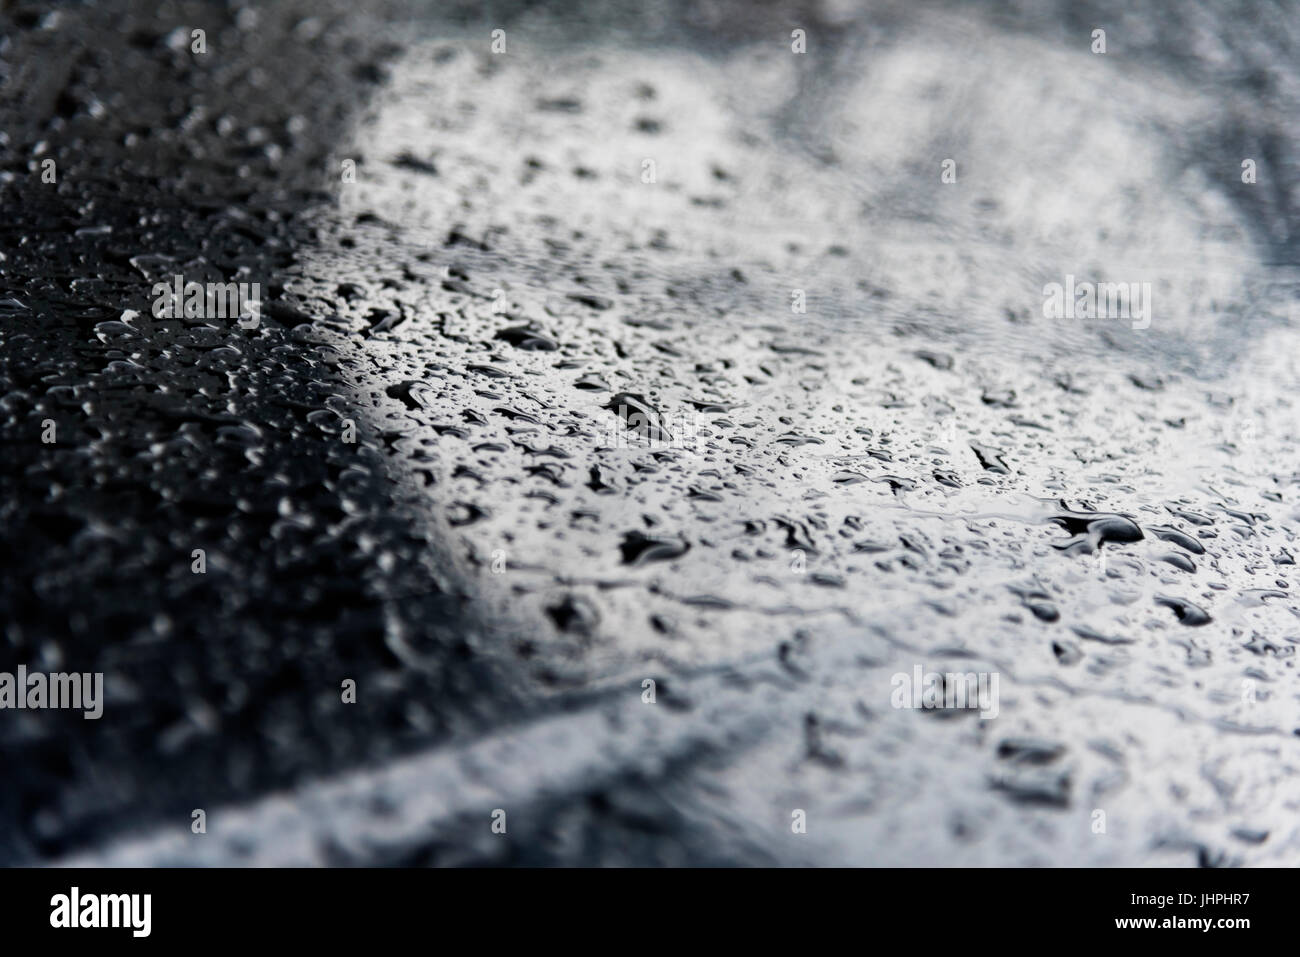 Drops of water at dark polished metal surface, background - Stock Image